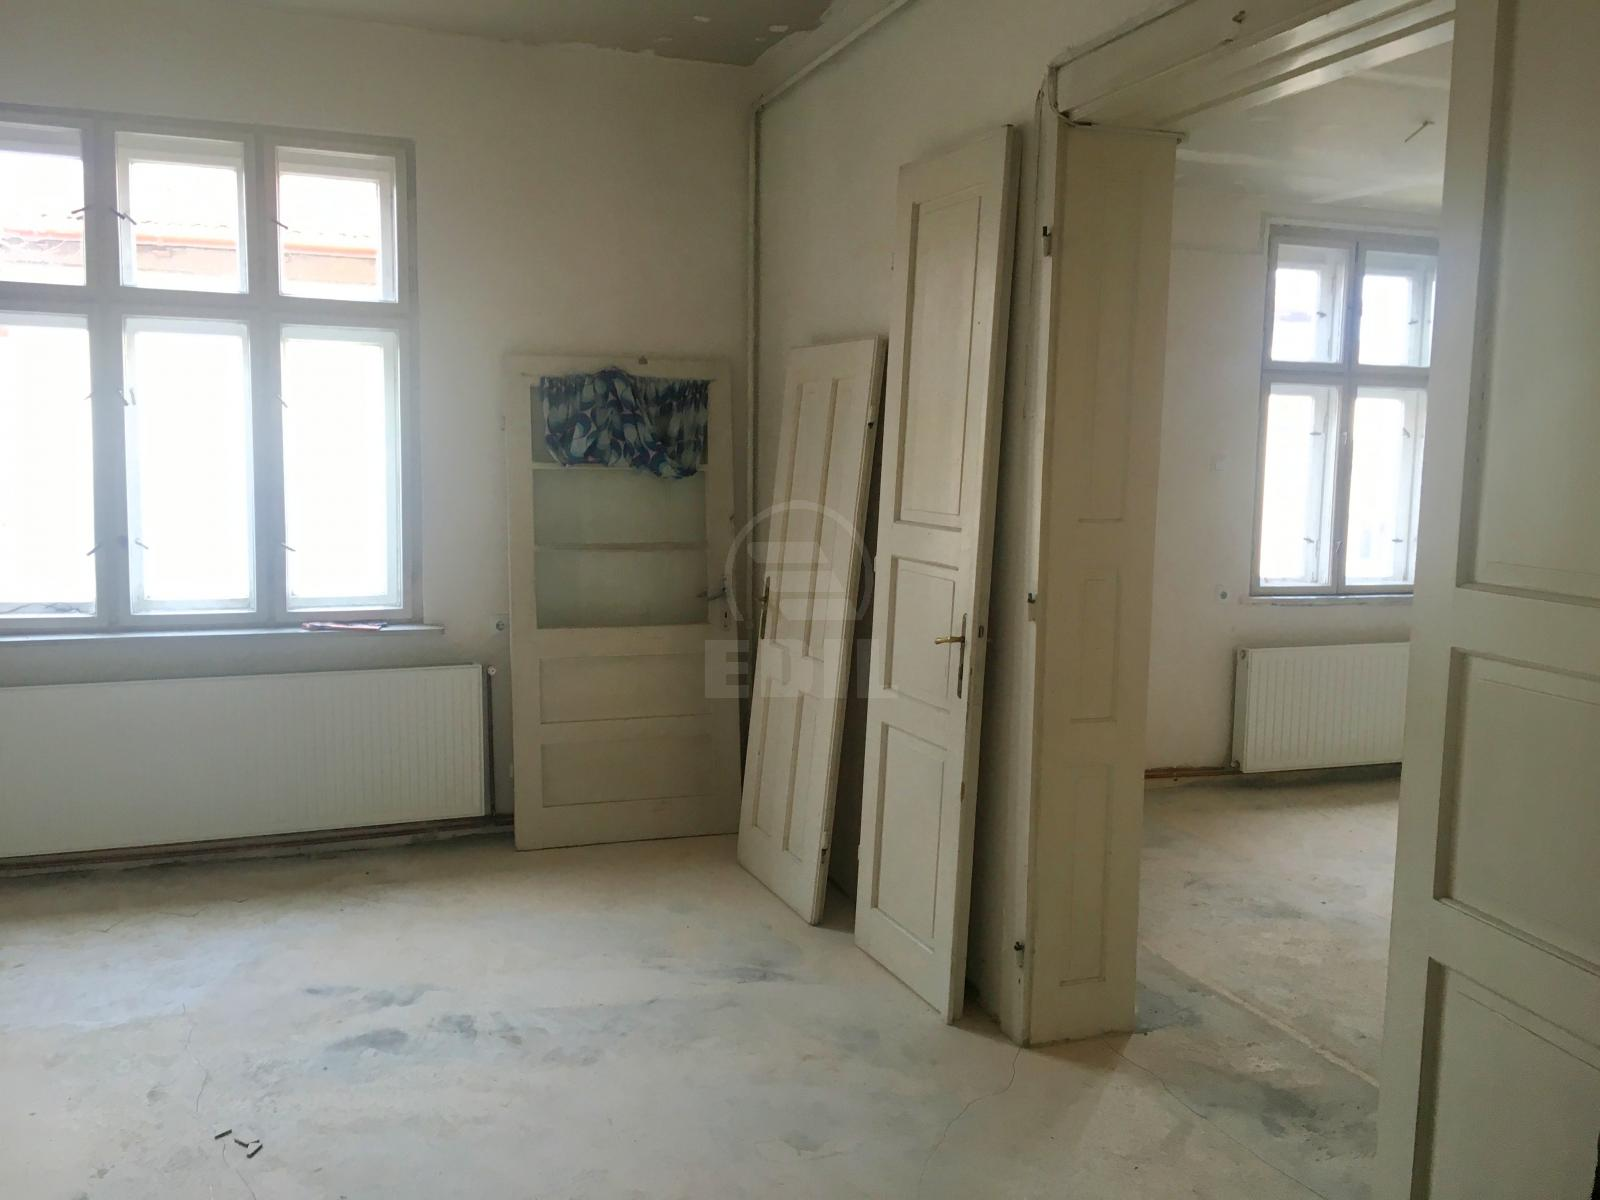 Apartment for sale 2 rooms, APCJ273754-7